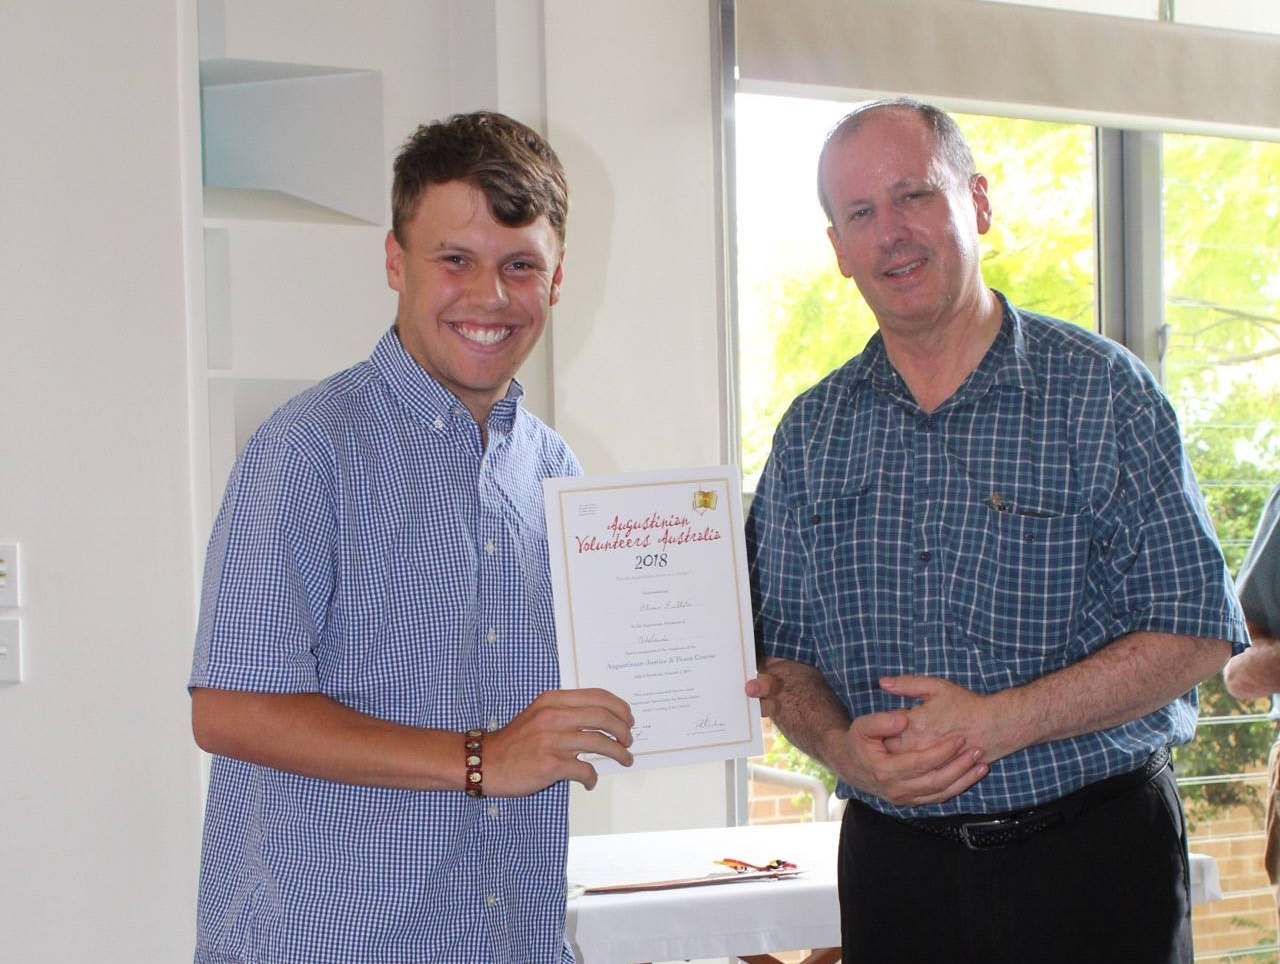 - Oliver has been volunteering with CTK Homework and Breakfast Club and Welcome to Australia in SA.